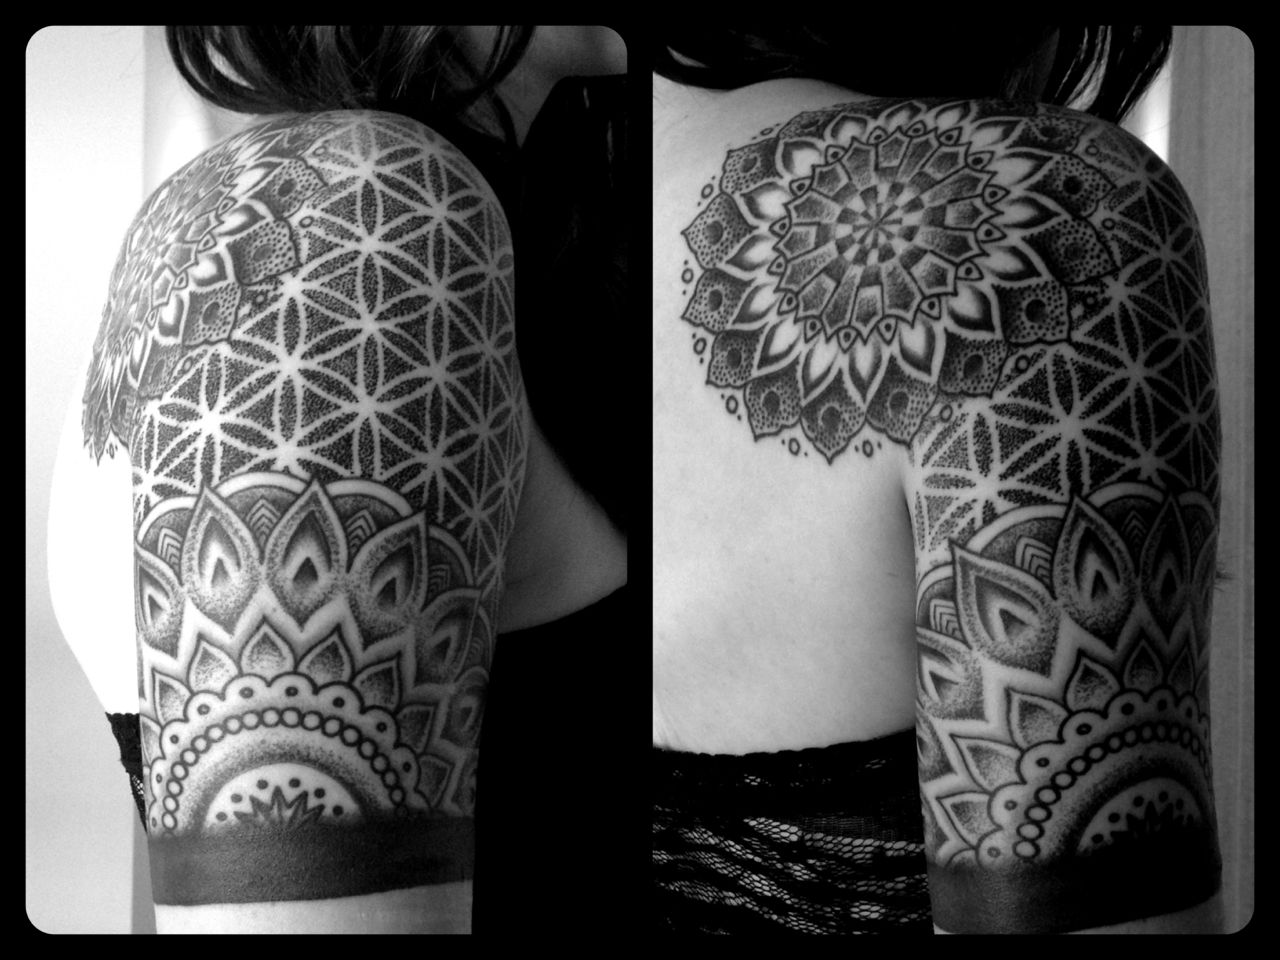 45+ Awesome Flower of life tattoo designs image ideas